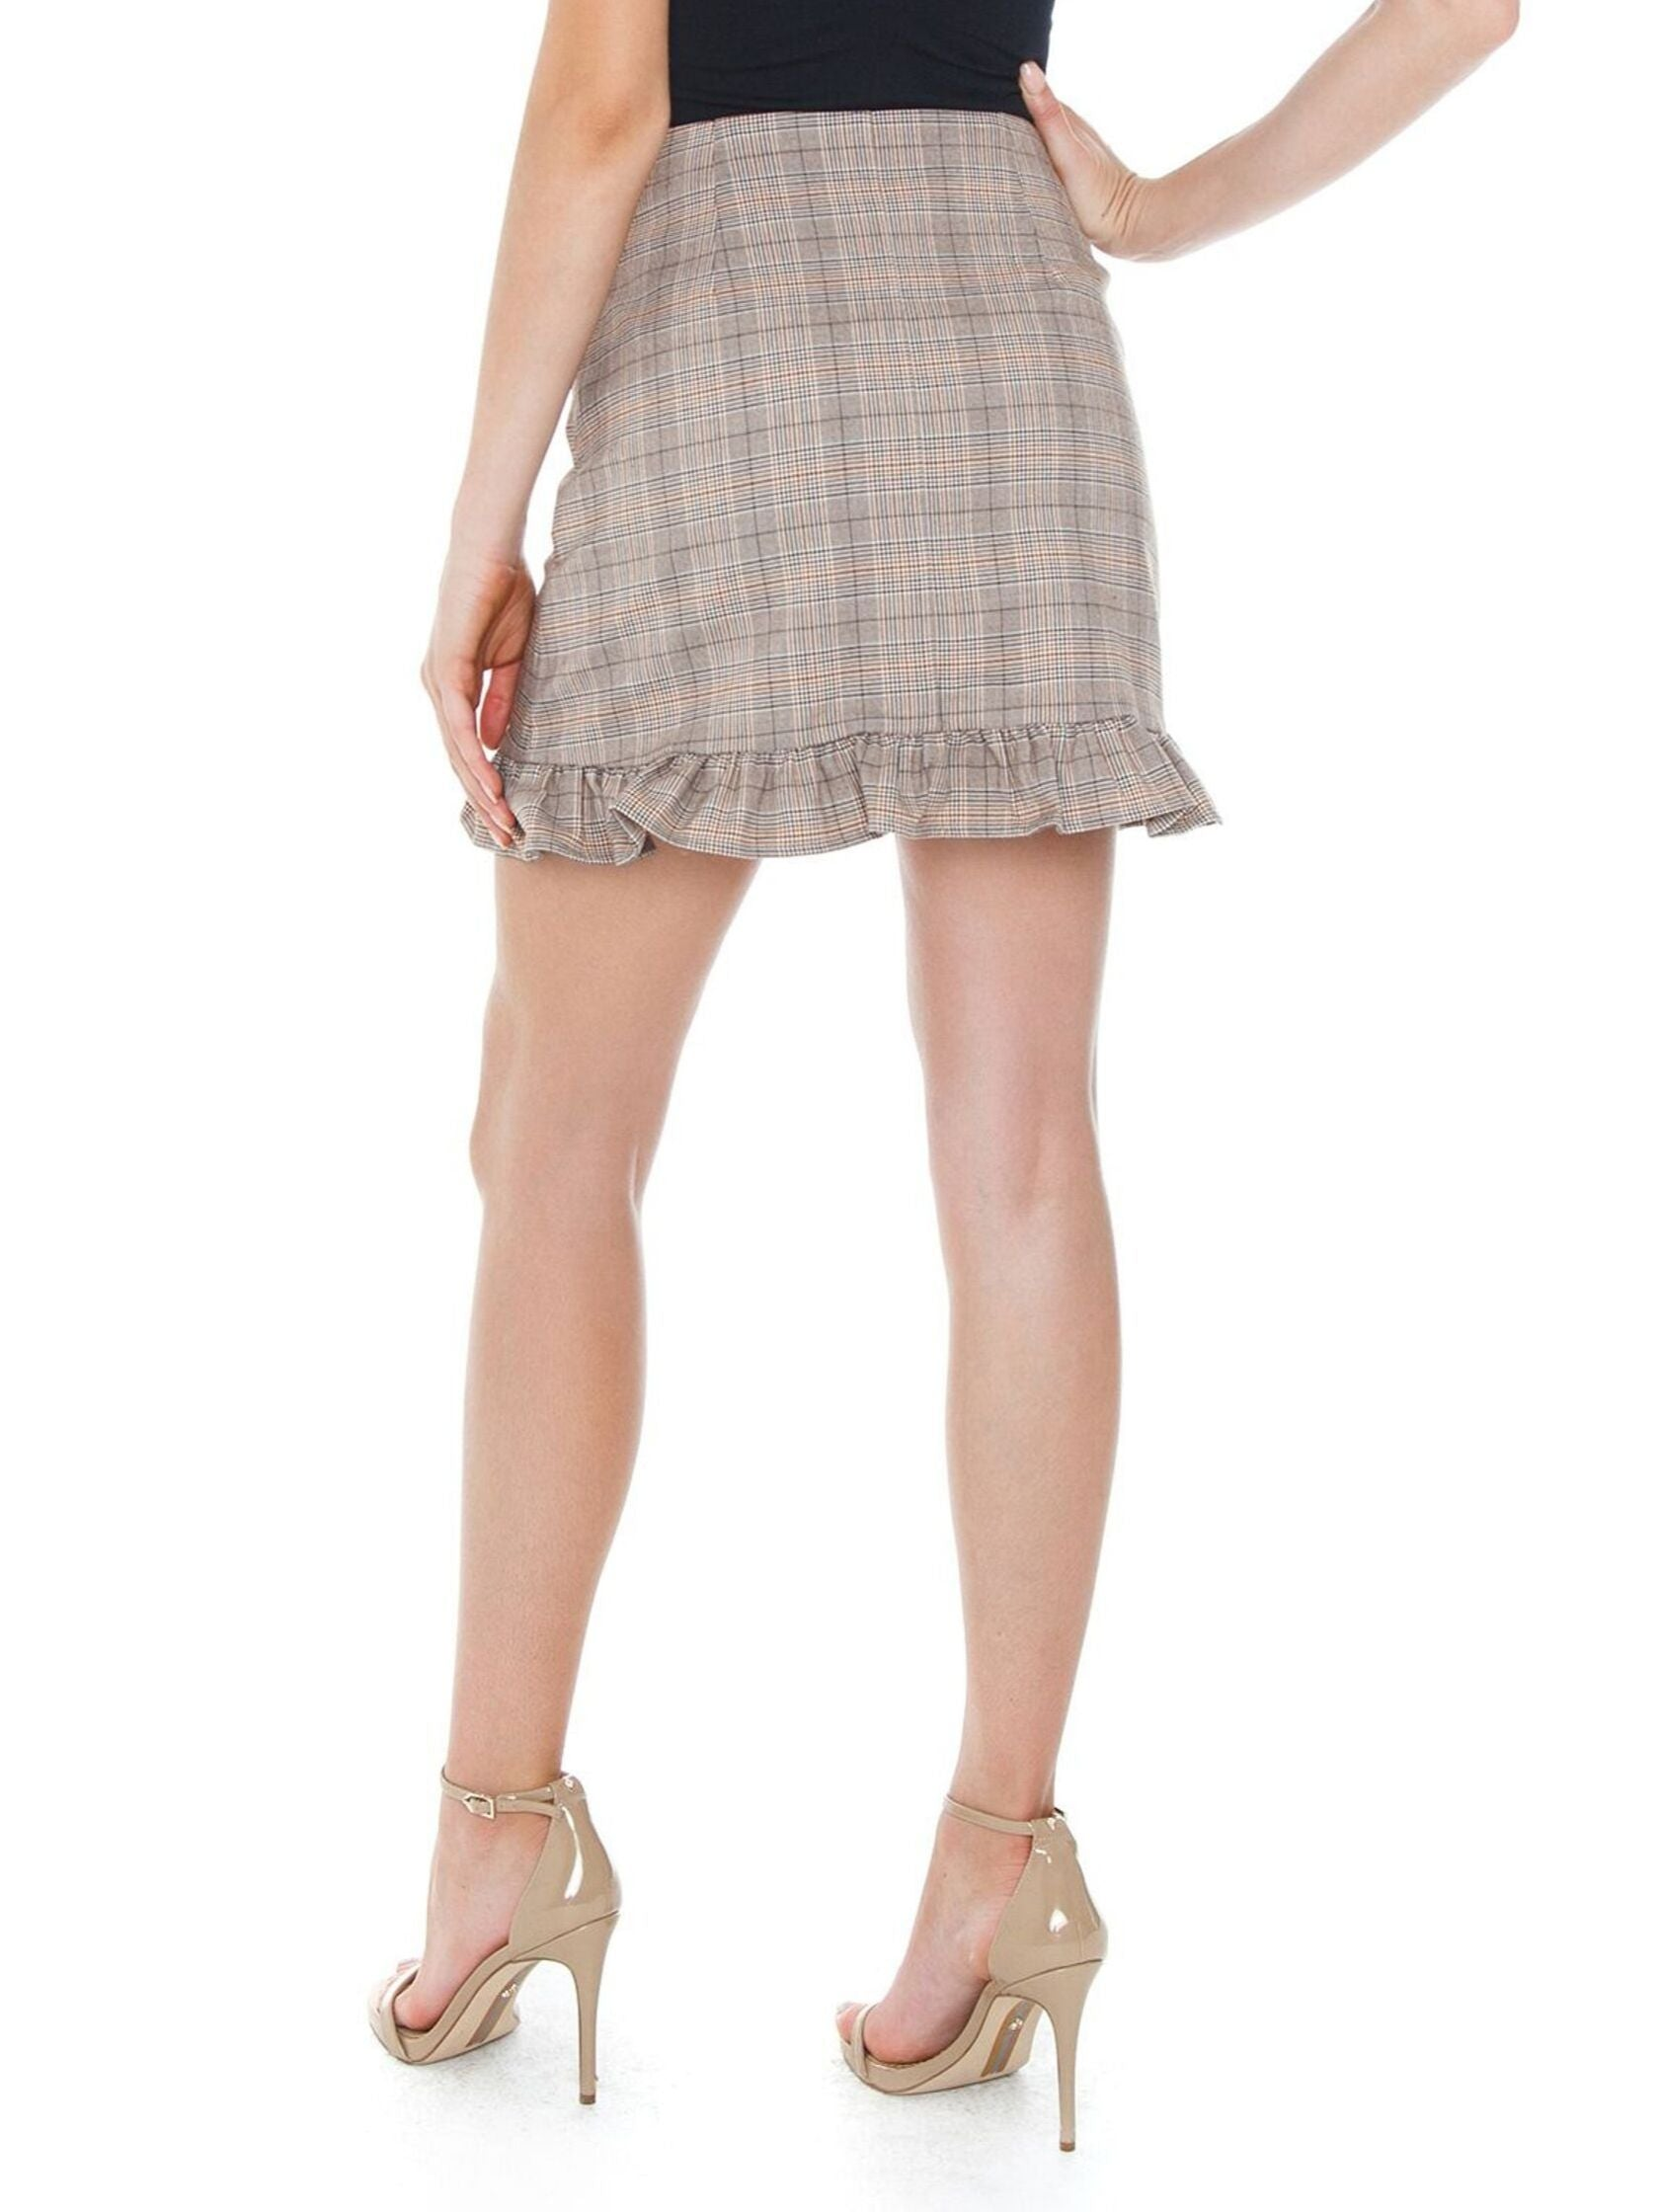 Women outfit in a skirt rental from Cupcakes and Cashmere called Matilda Skirt